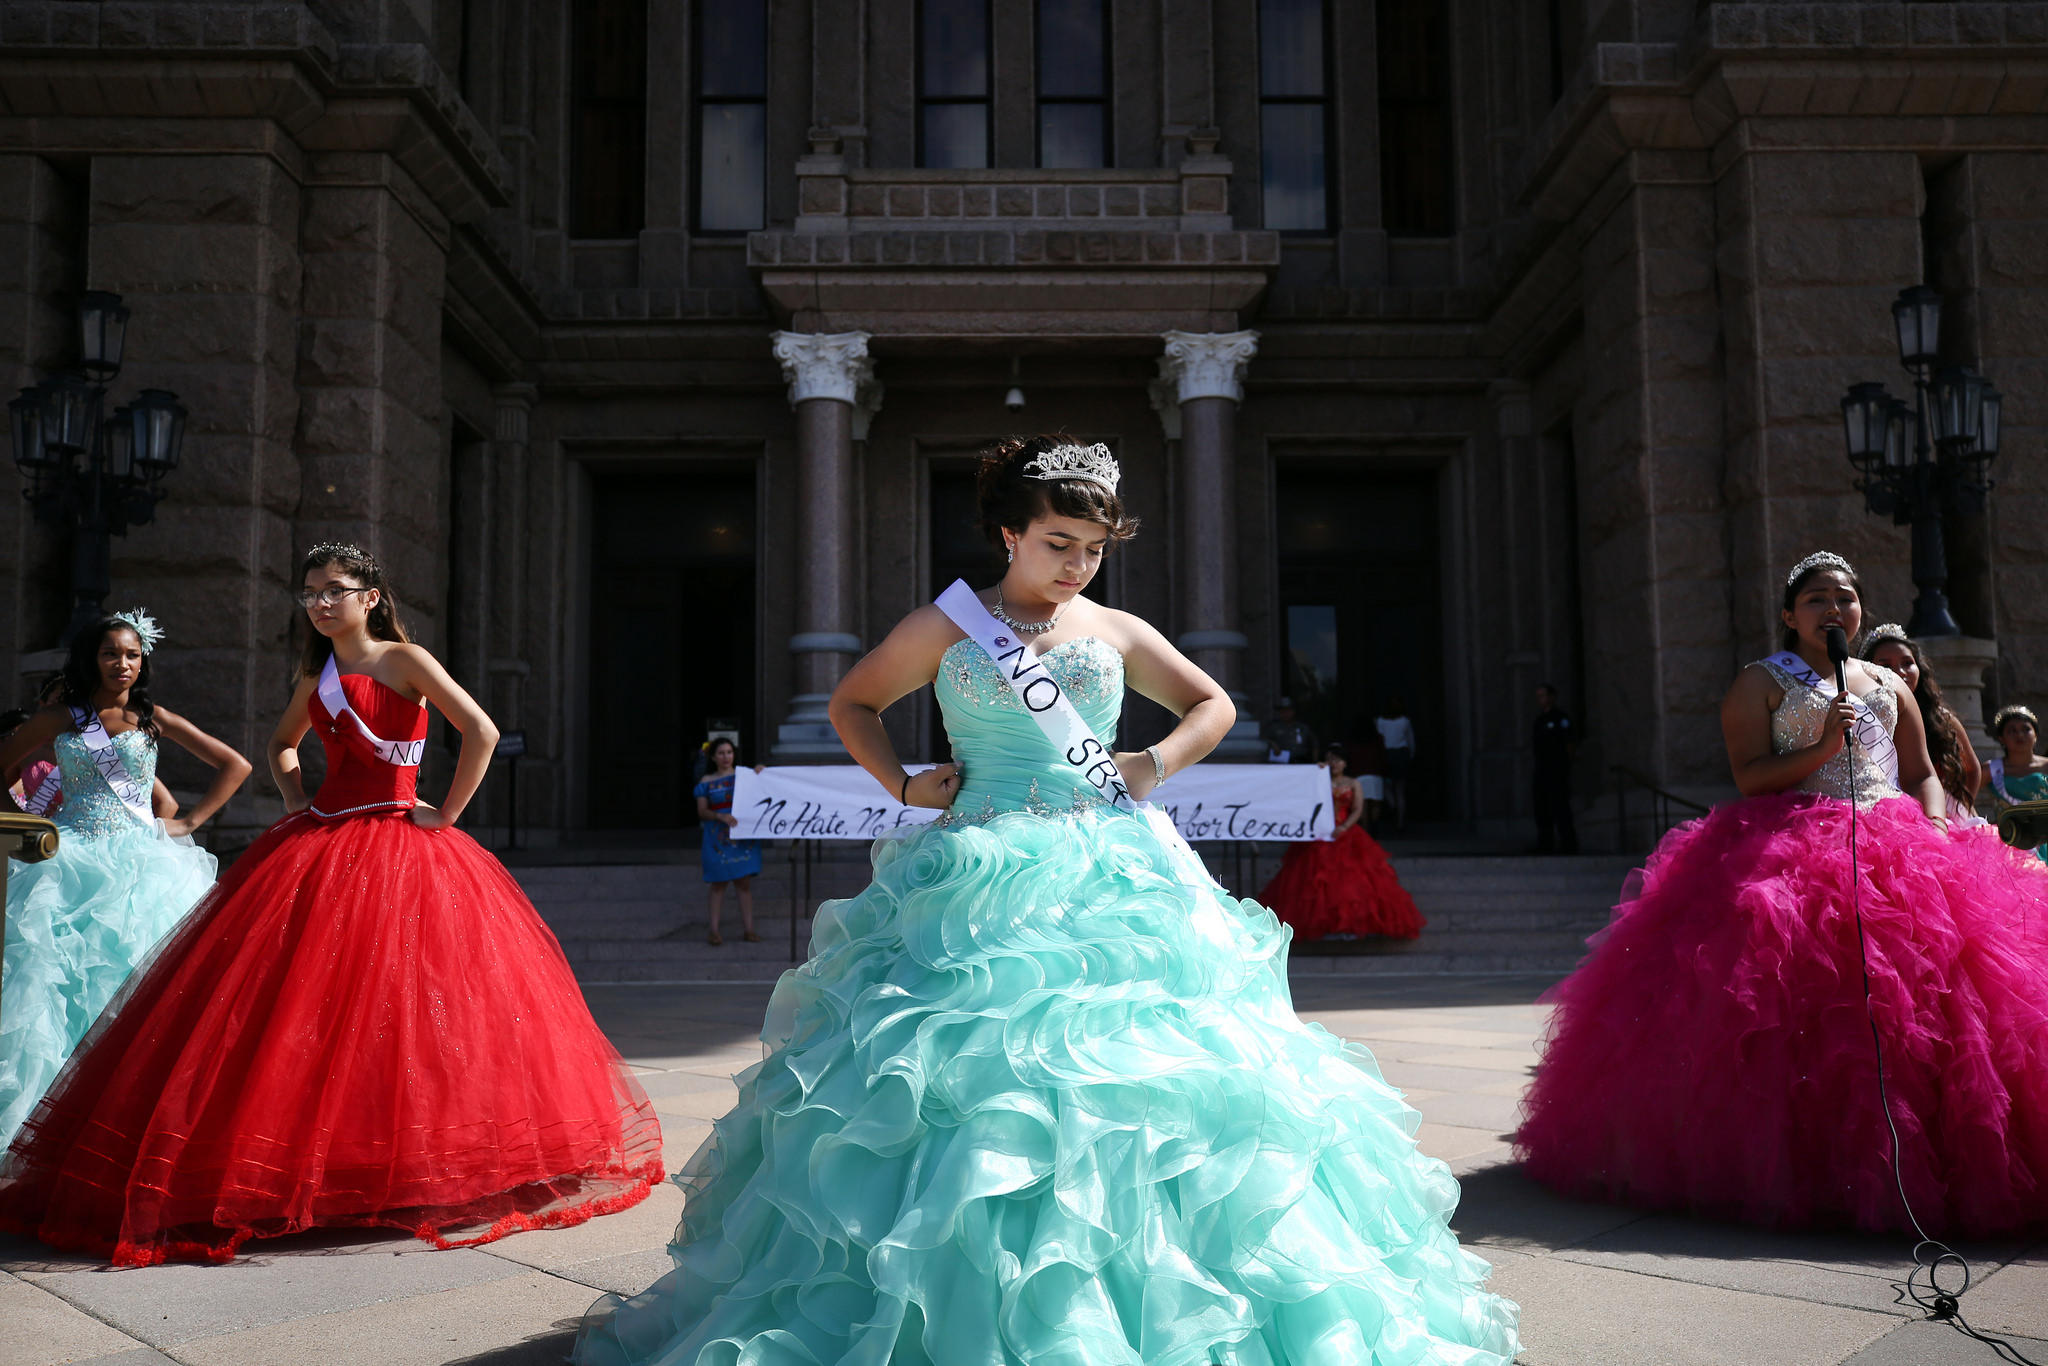 be1ed9da92f Jennifer Ramirez and 14 other young women wearing quinceañera dresses  protest the new sanctuary cities ban on the south steps of the Texas state  Capitol on ...